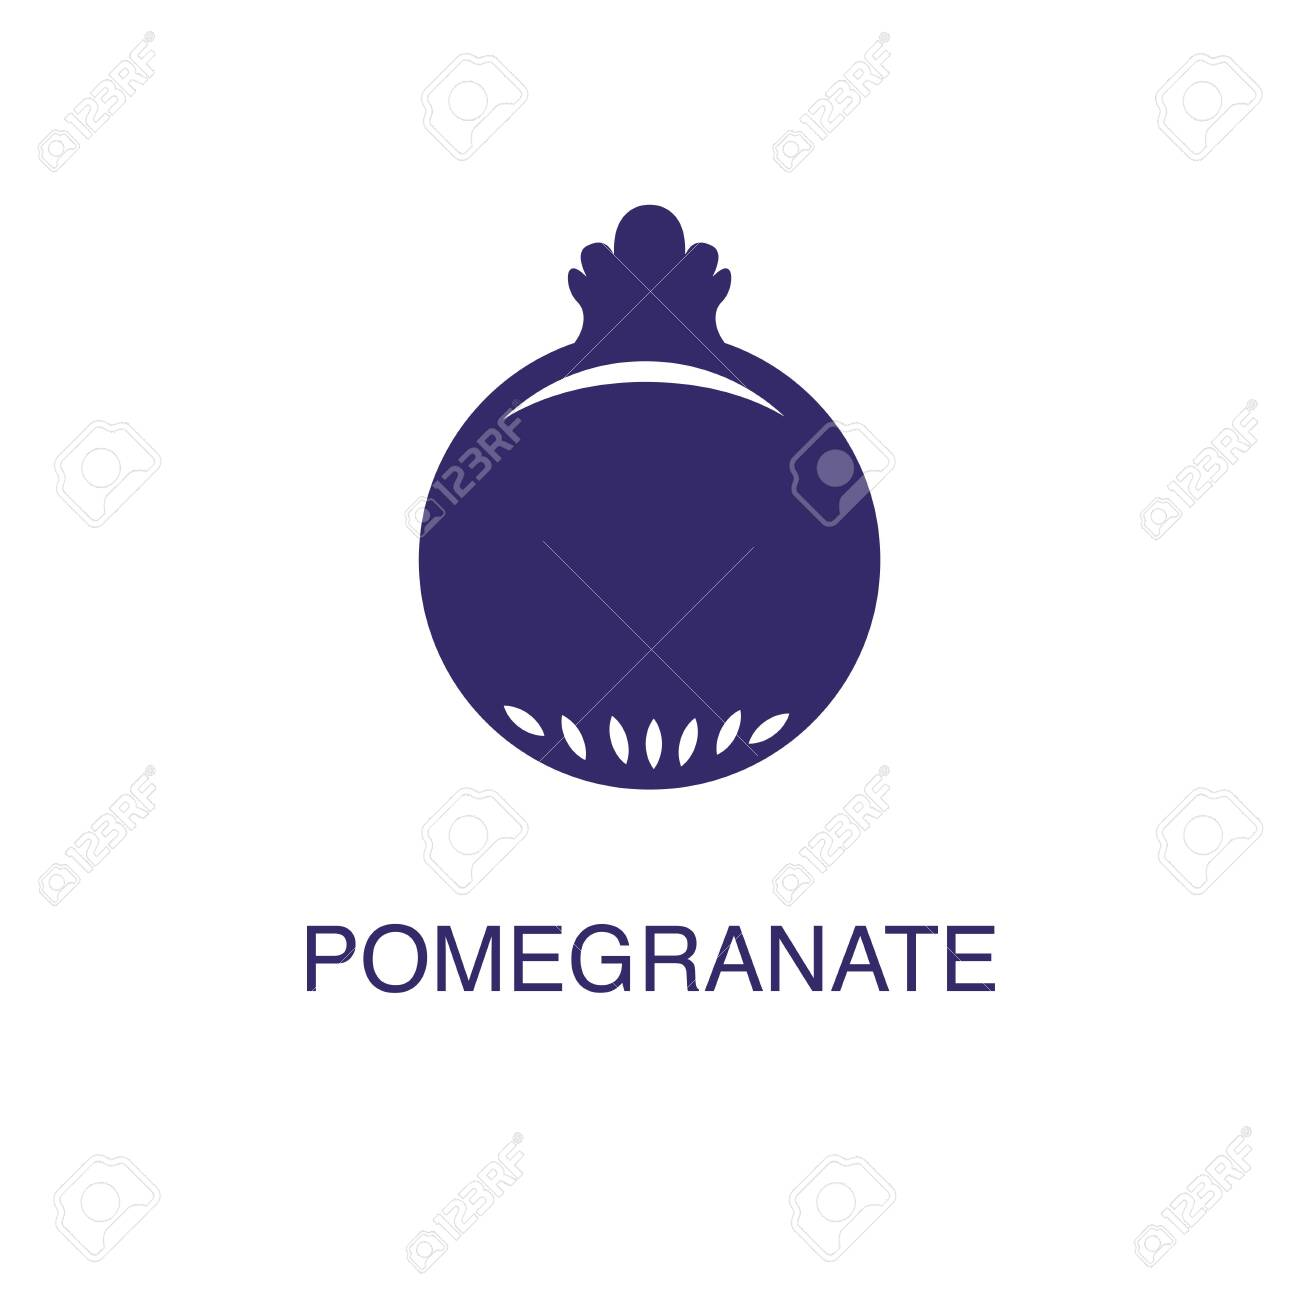 Pomegranate element in flat simple style on white background. Pomegranate icon, with text name concept template - 134450524